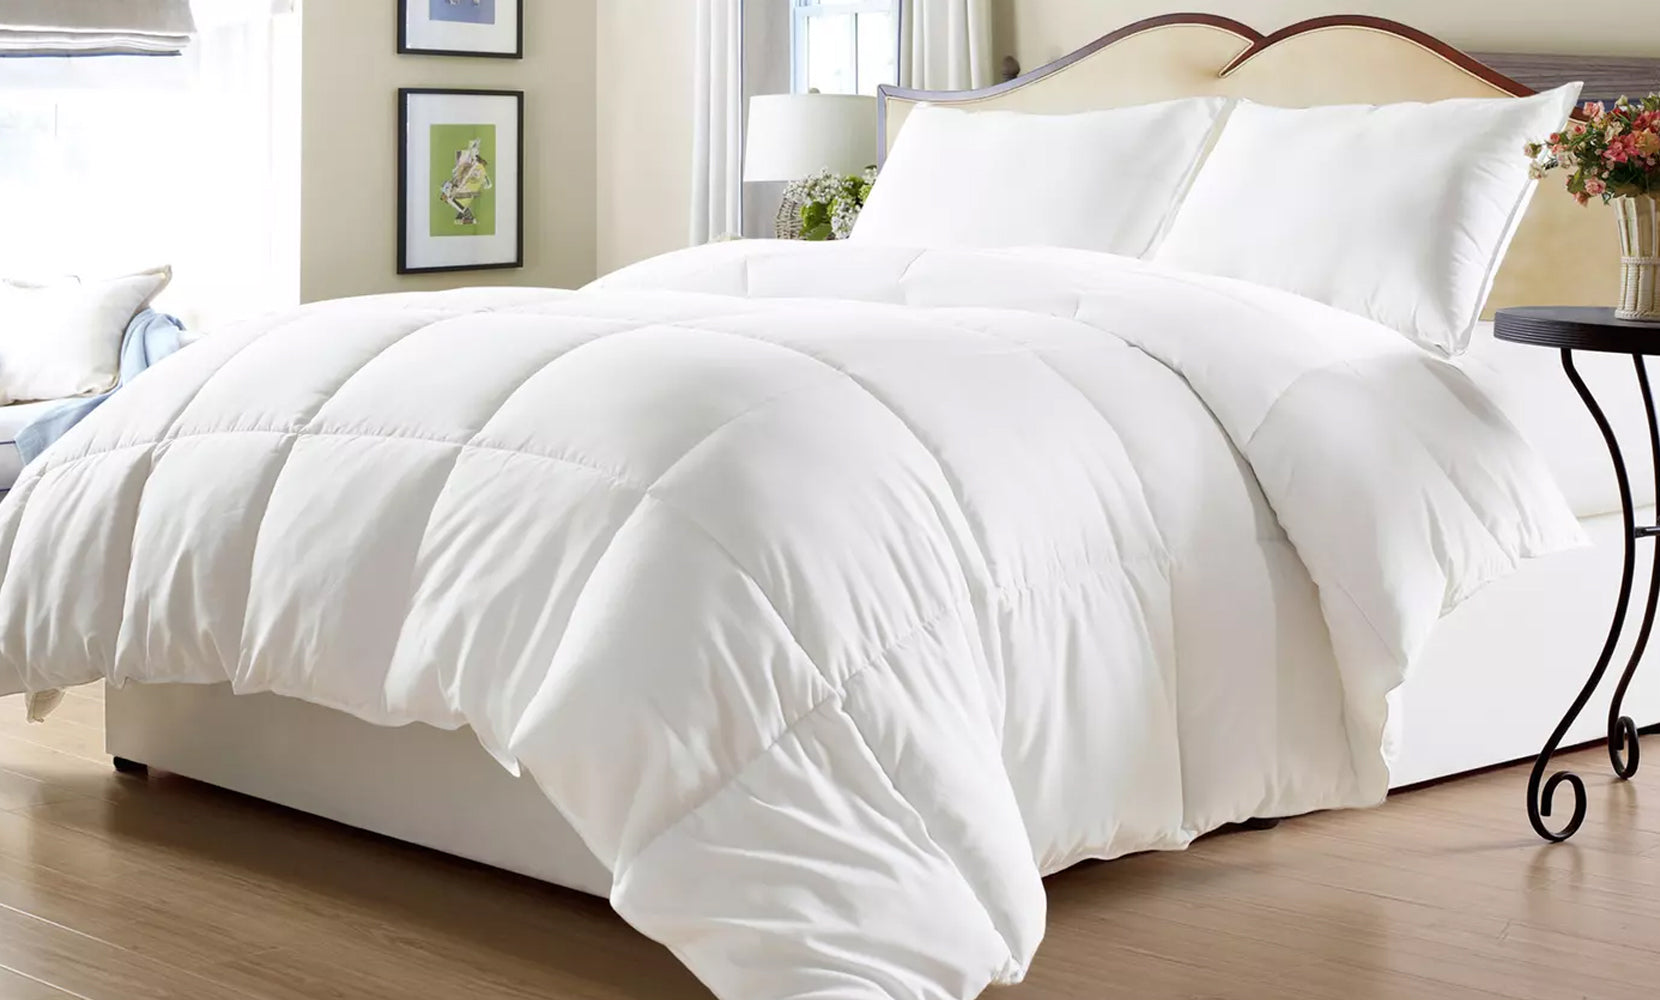 shopify-Super-Soft Down Alternative Comforters-10